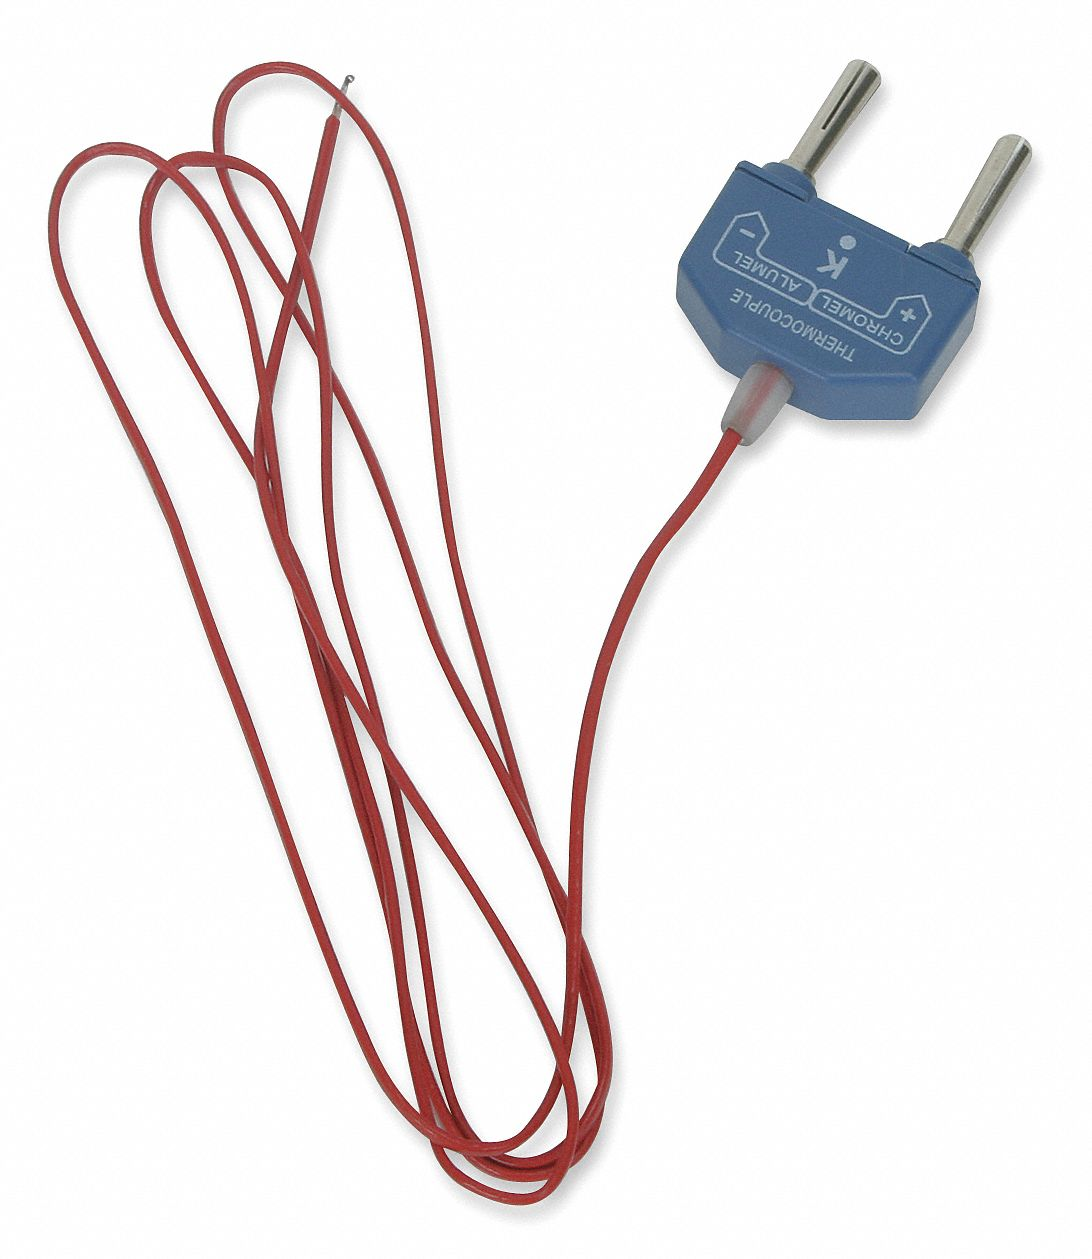 3 Wire Thermocouple : Grainger approved banana plug k thermocouple bead wire